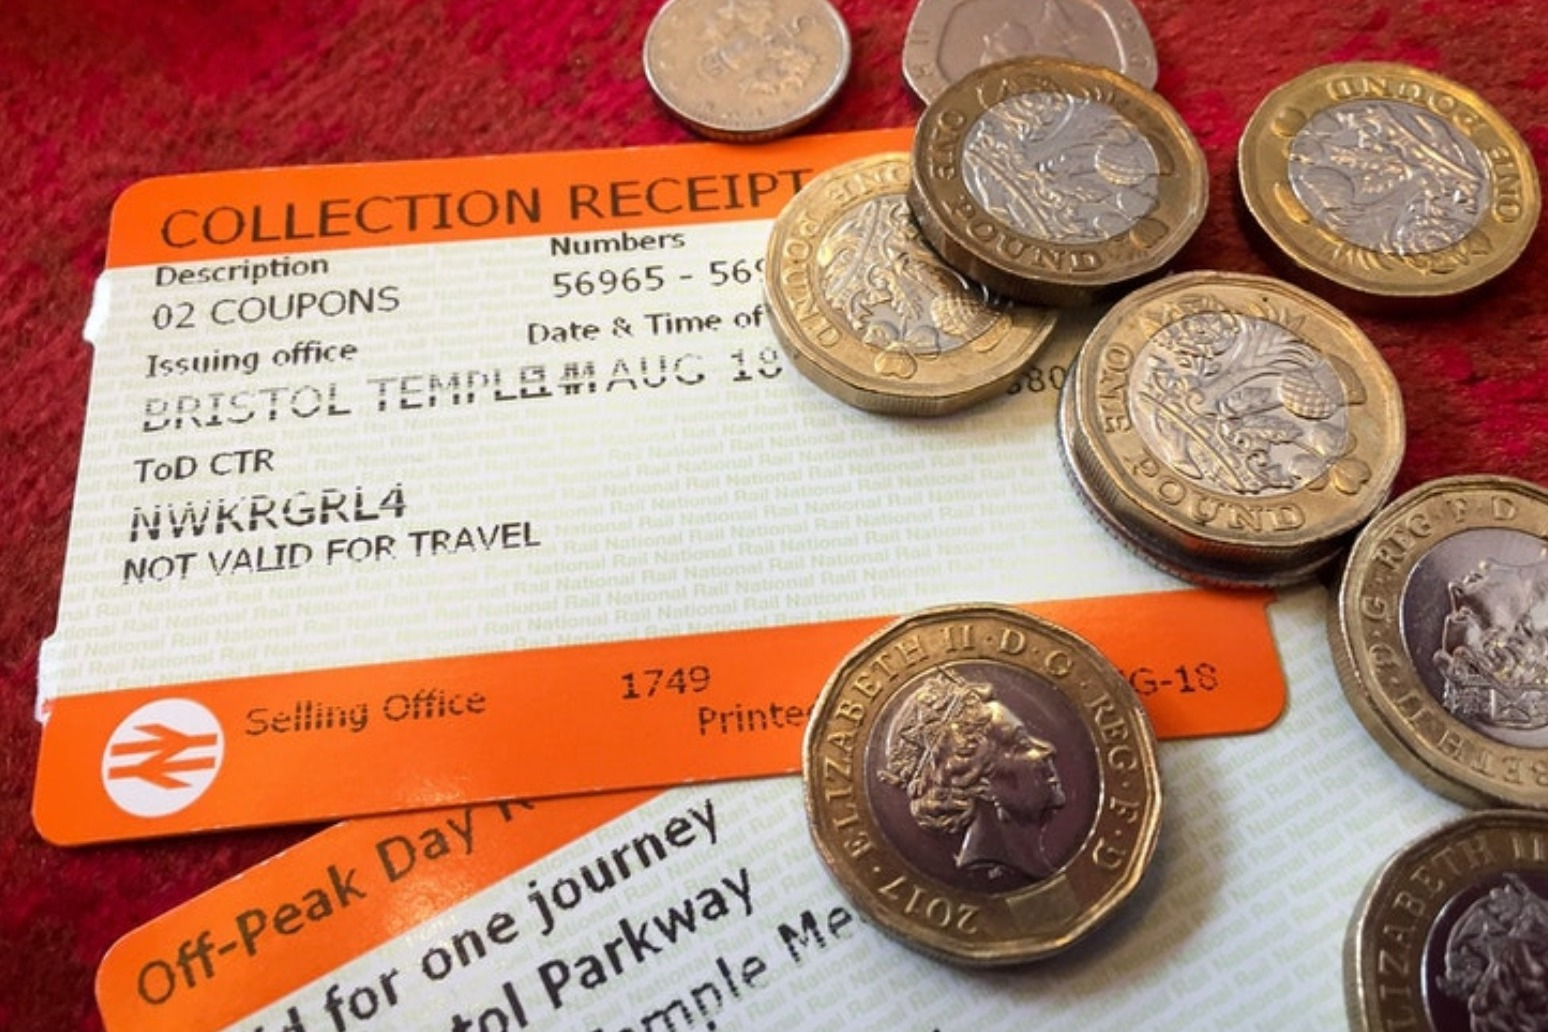 Rail commuters face 1.6% rise in fares